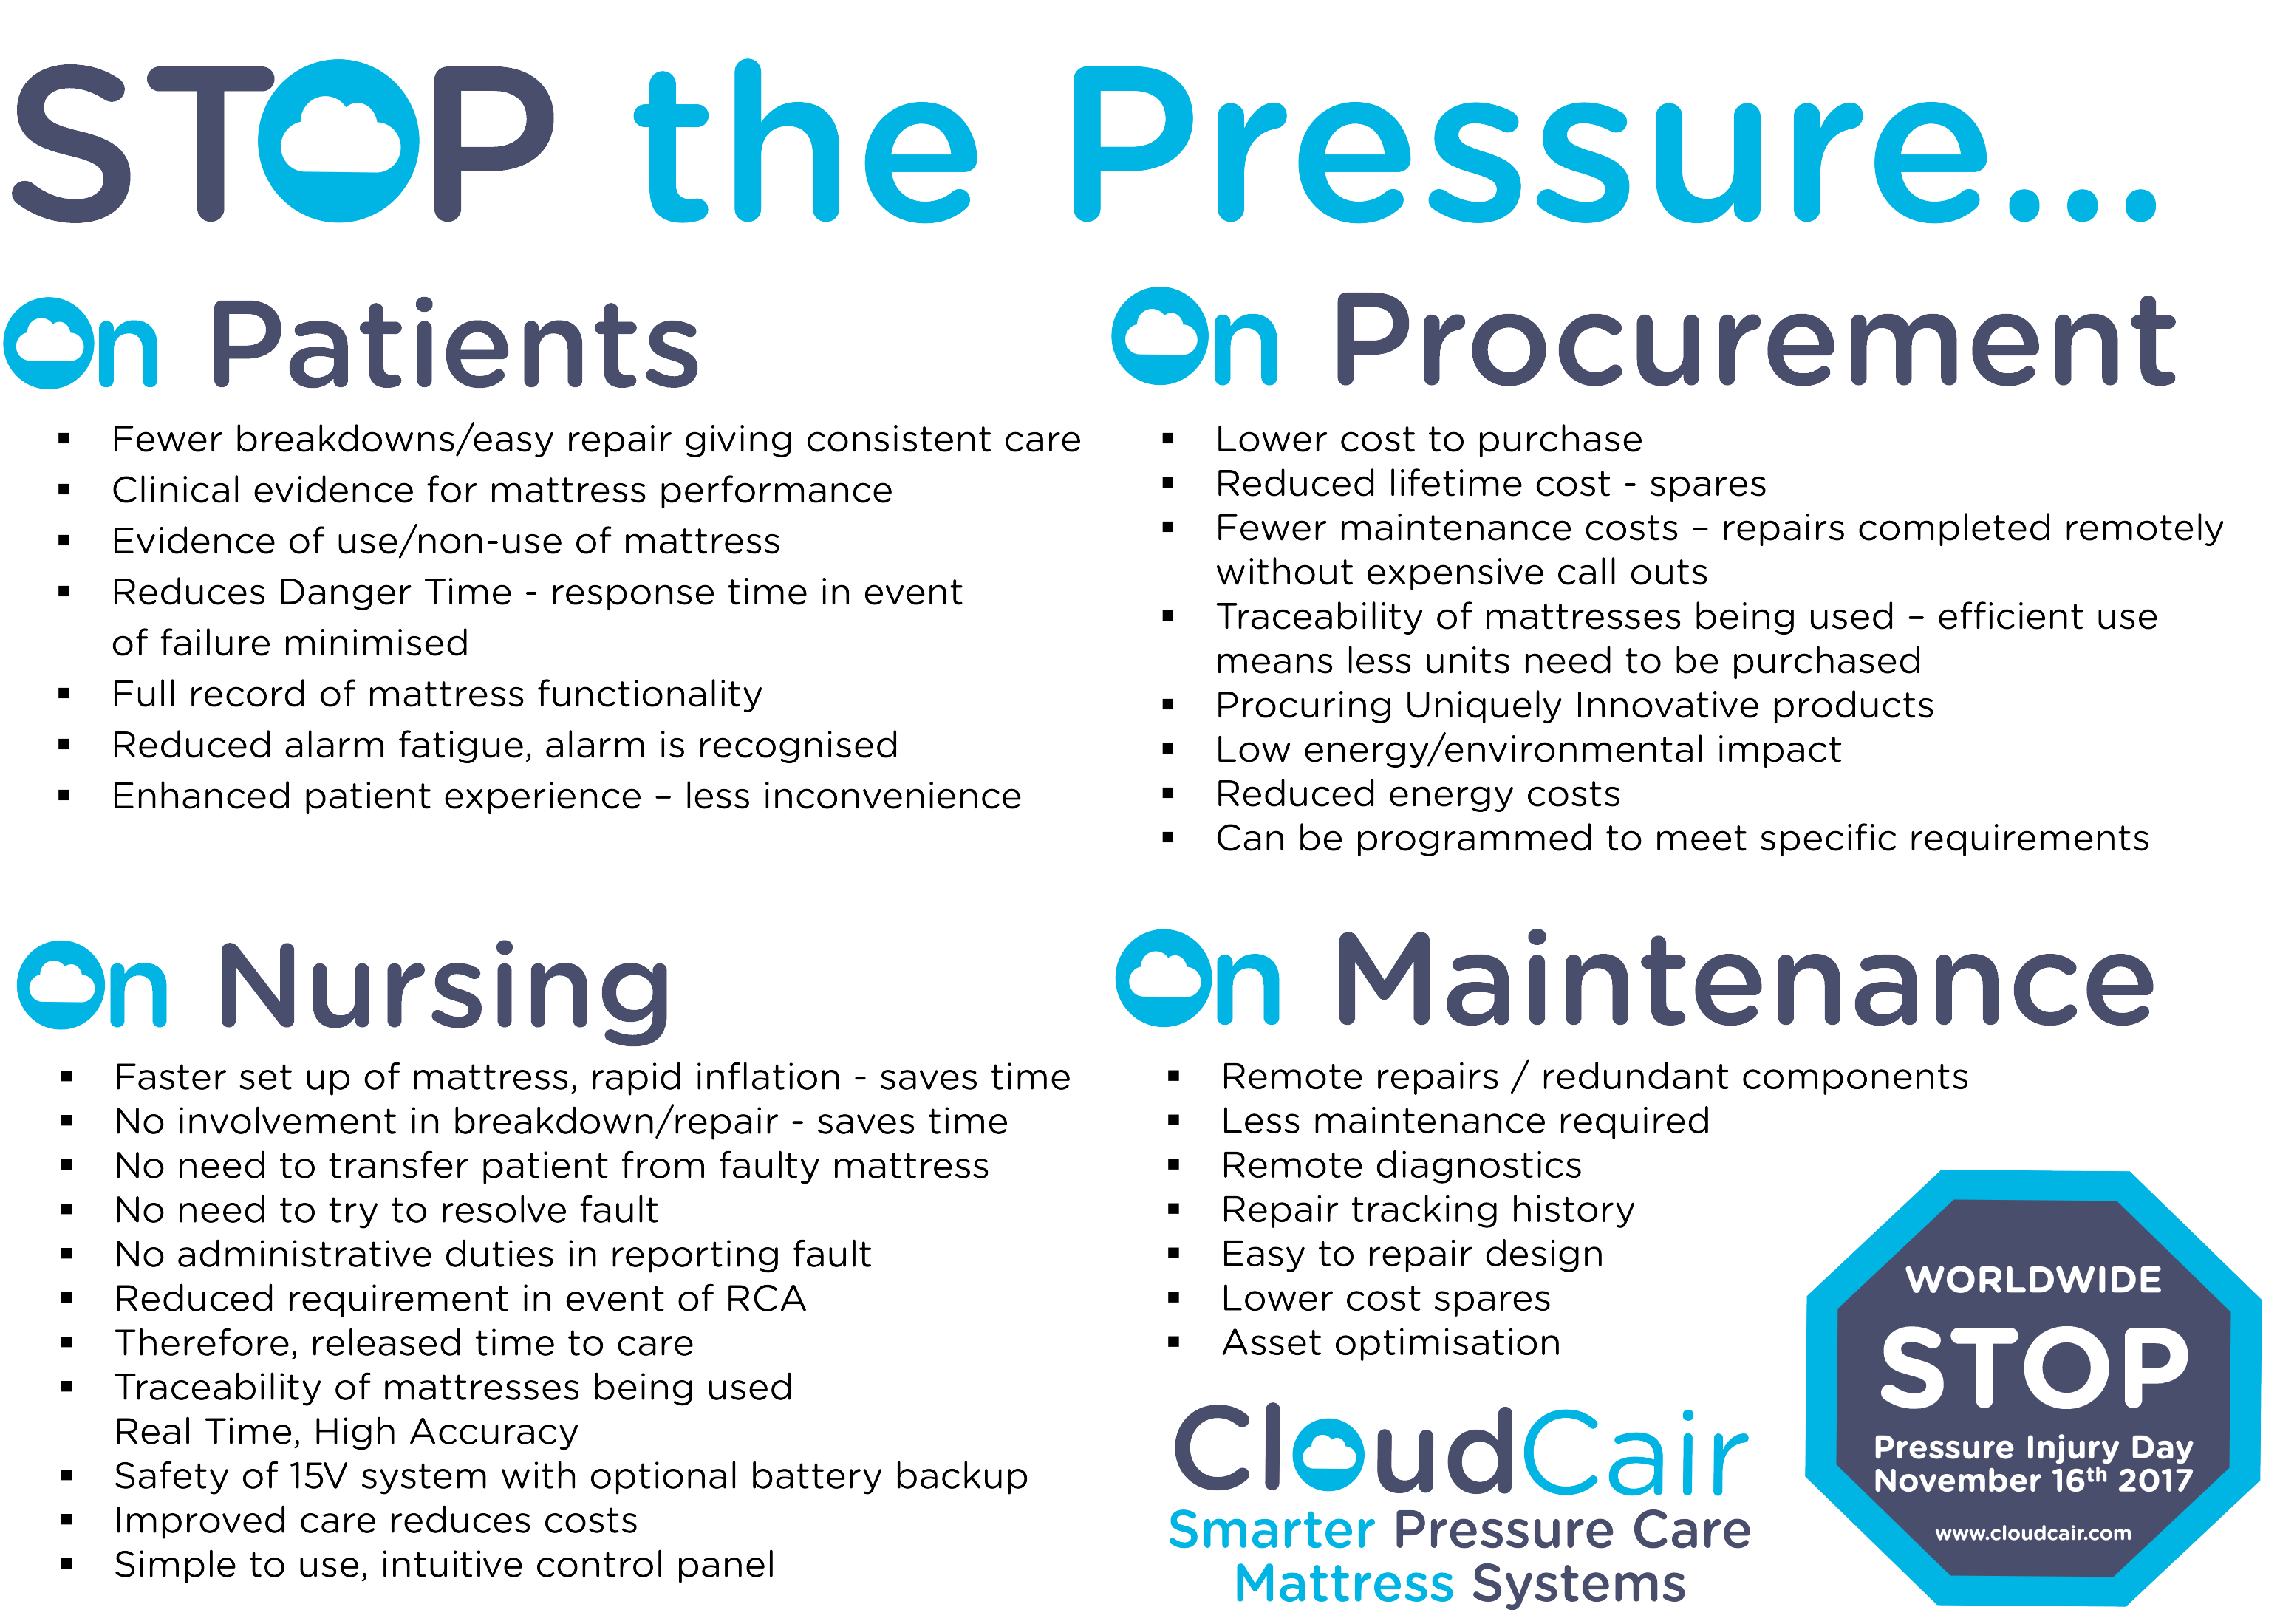 Stop the Pressure with Smart Pressure Care